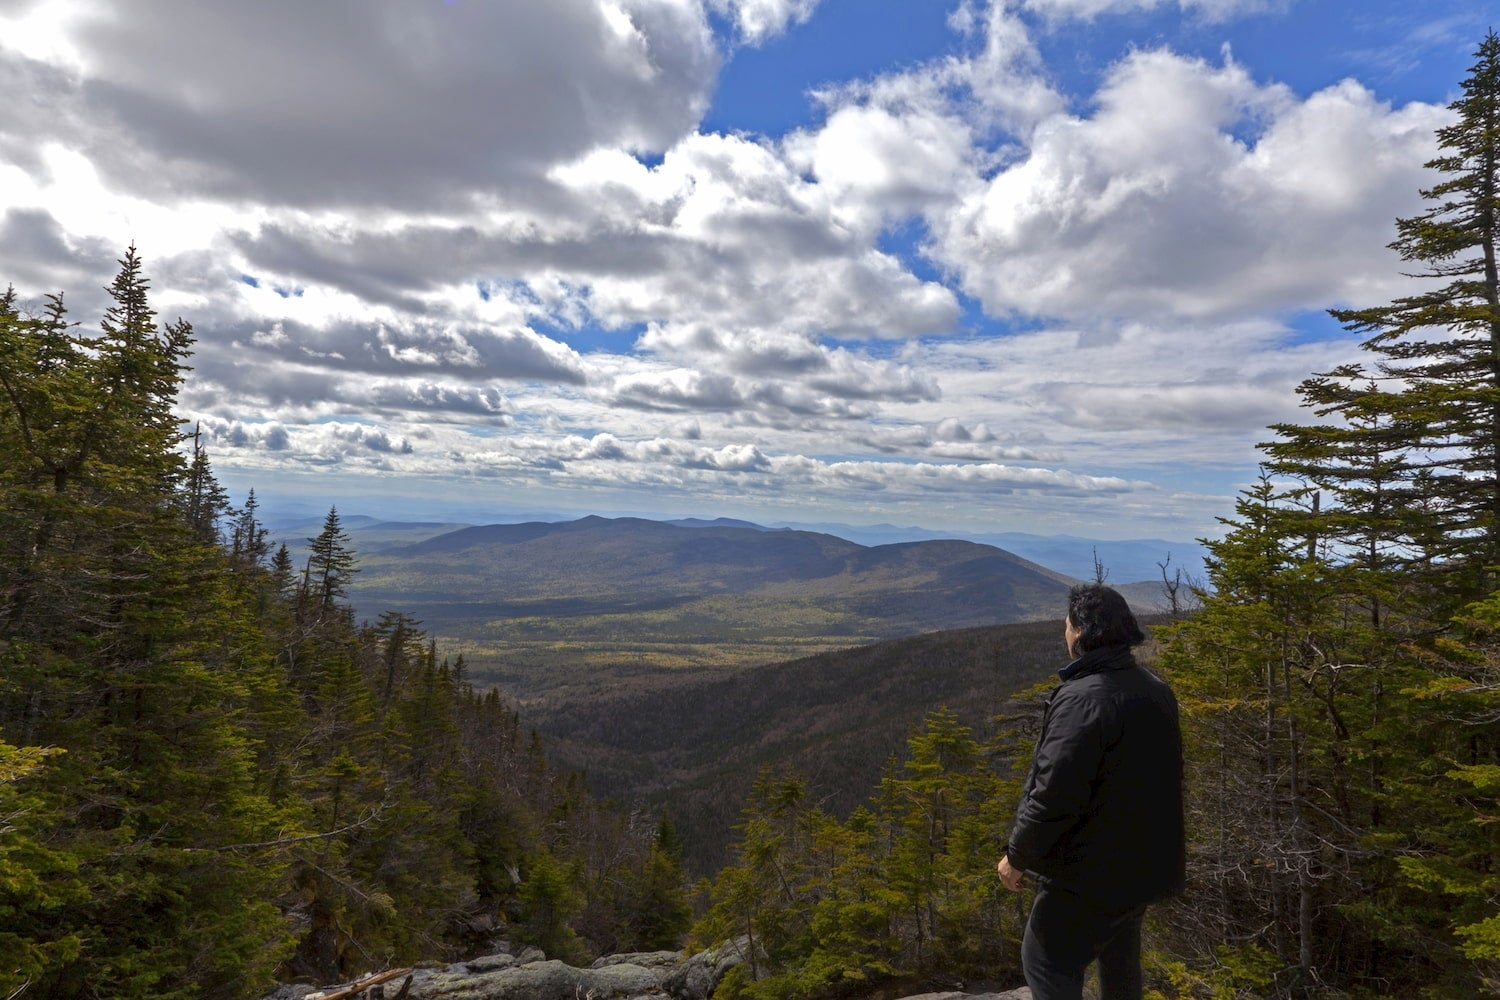 Man looking out from elevation on Mount Washinton via Ammonoosuc ravine trail in Coors County, New Hampshire.